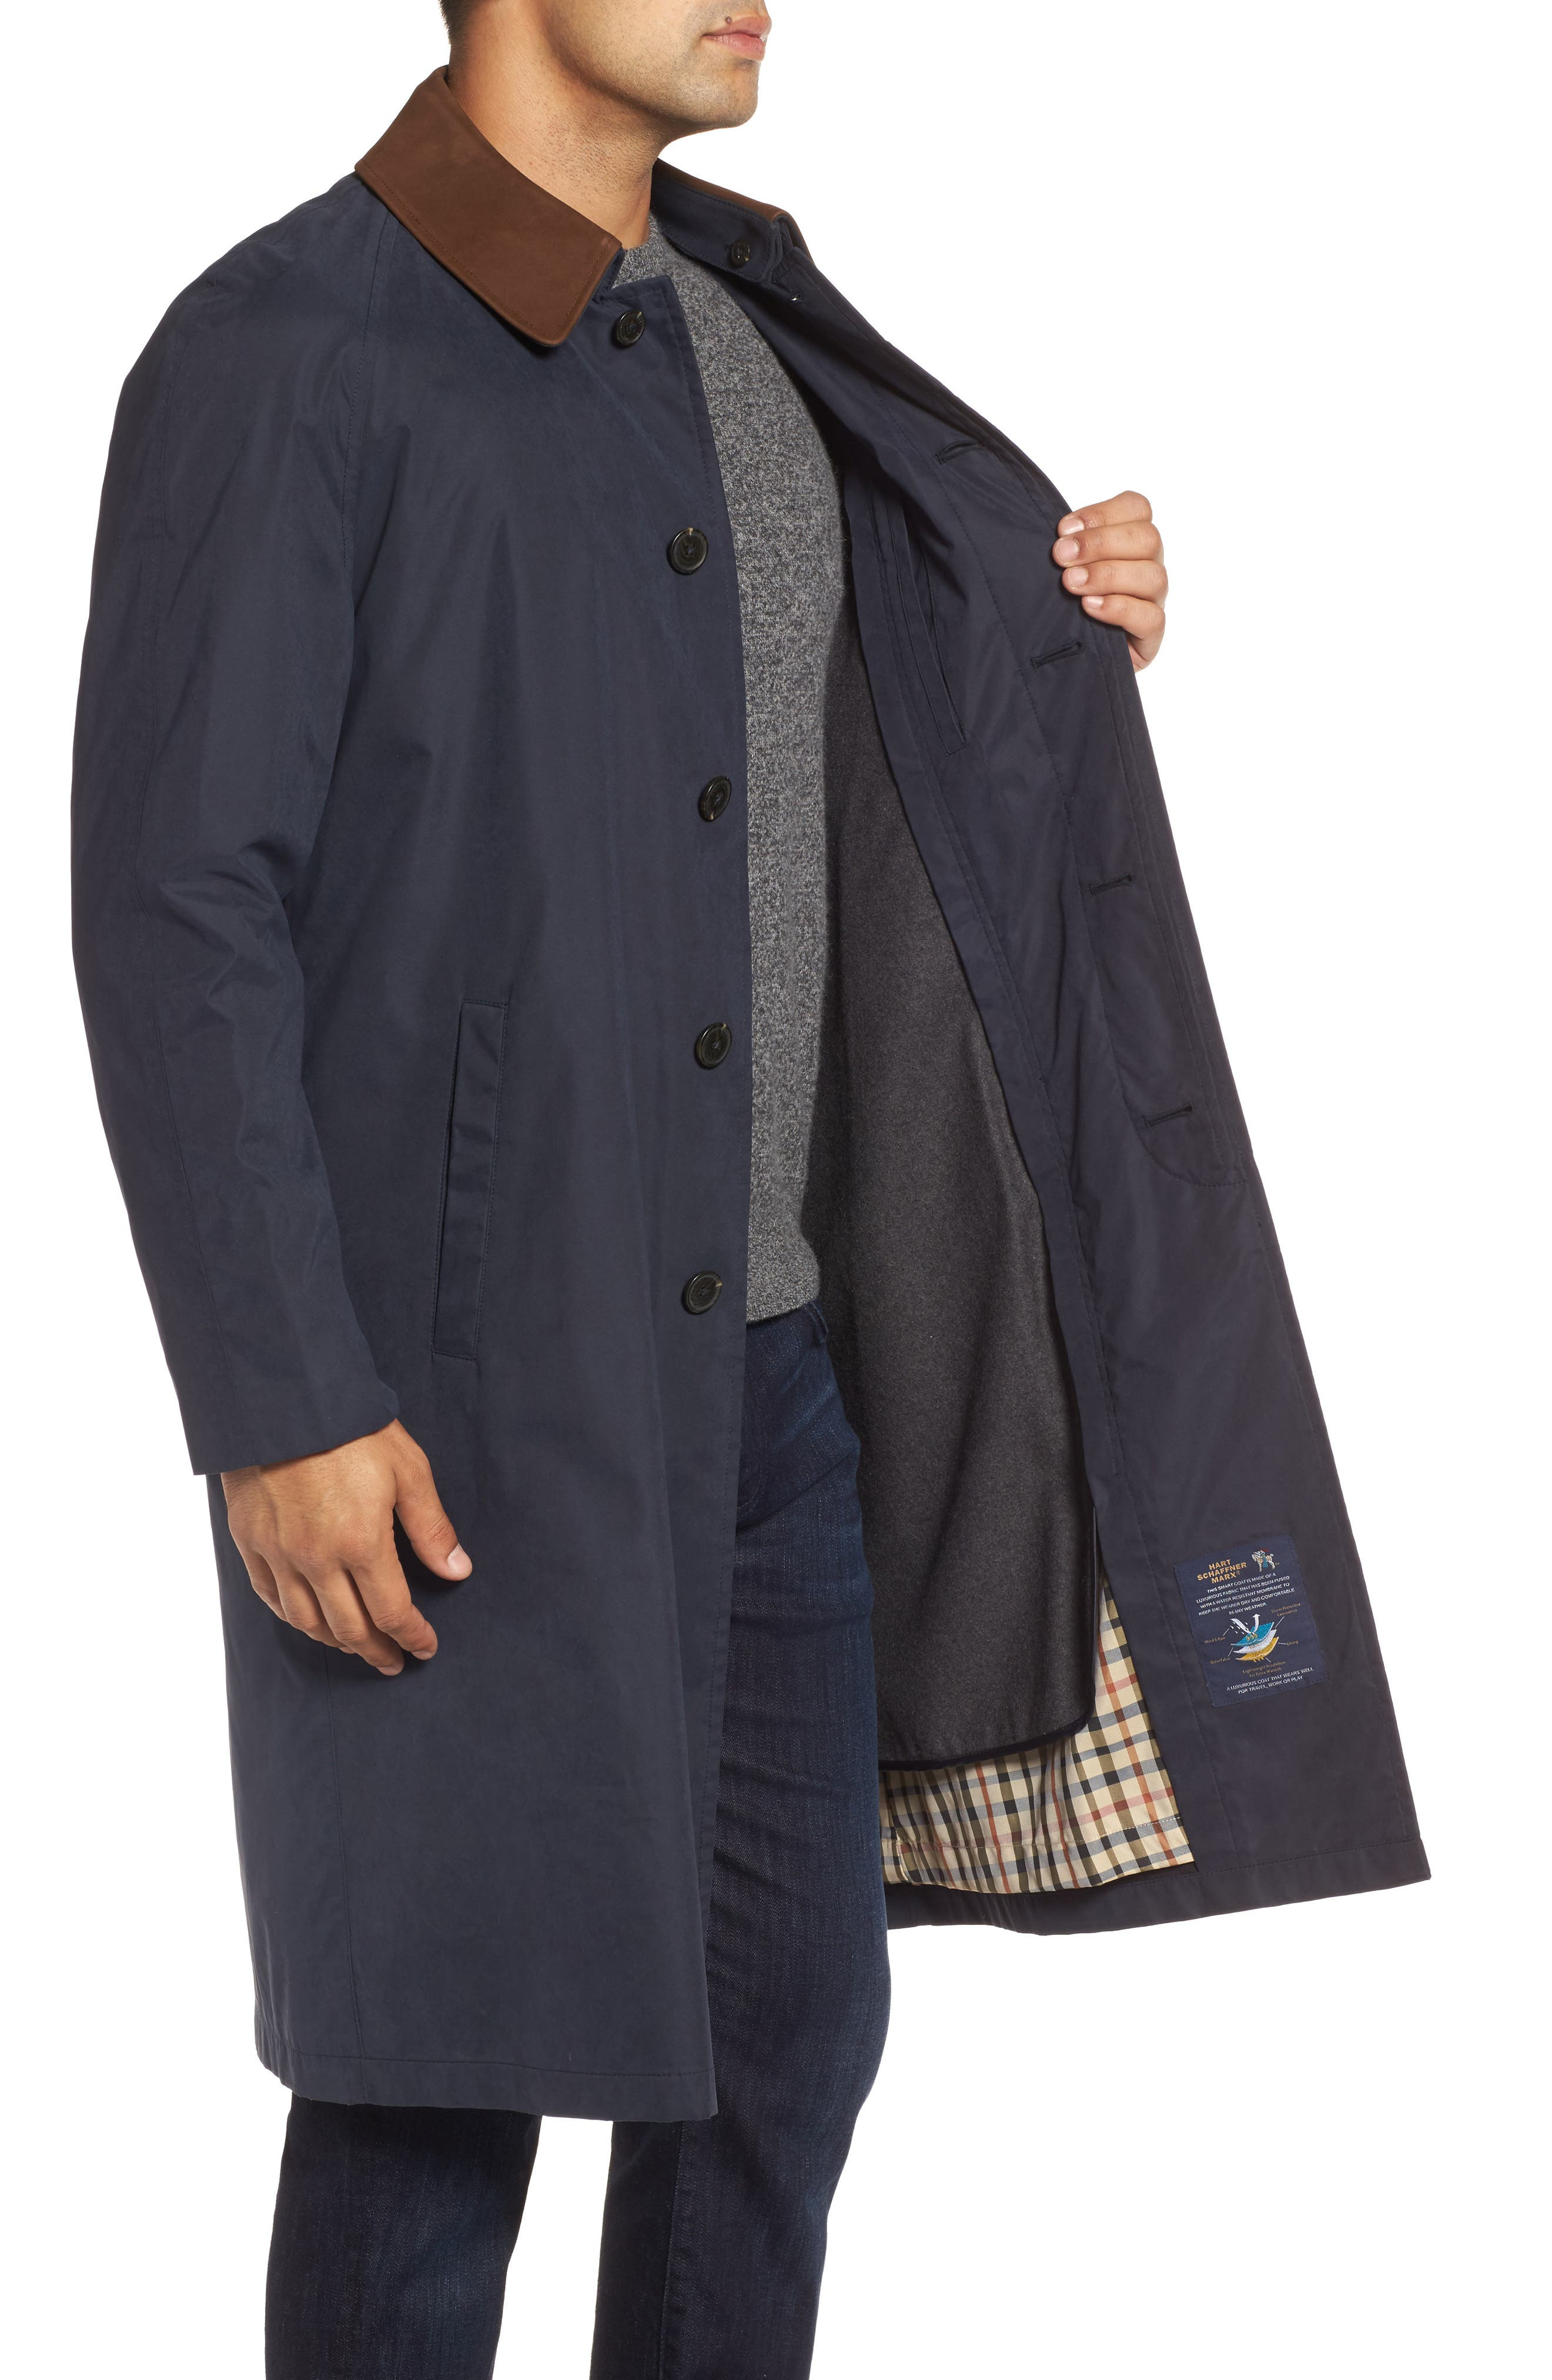 Lawrence Classic Fit Rain Coat,                             Alternate thumbnail 3, color,                             Navy